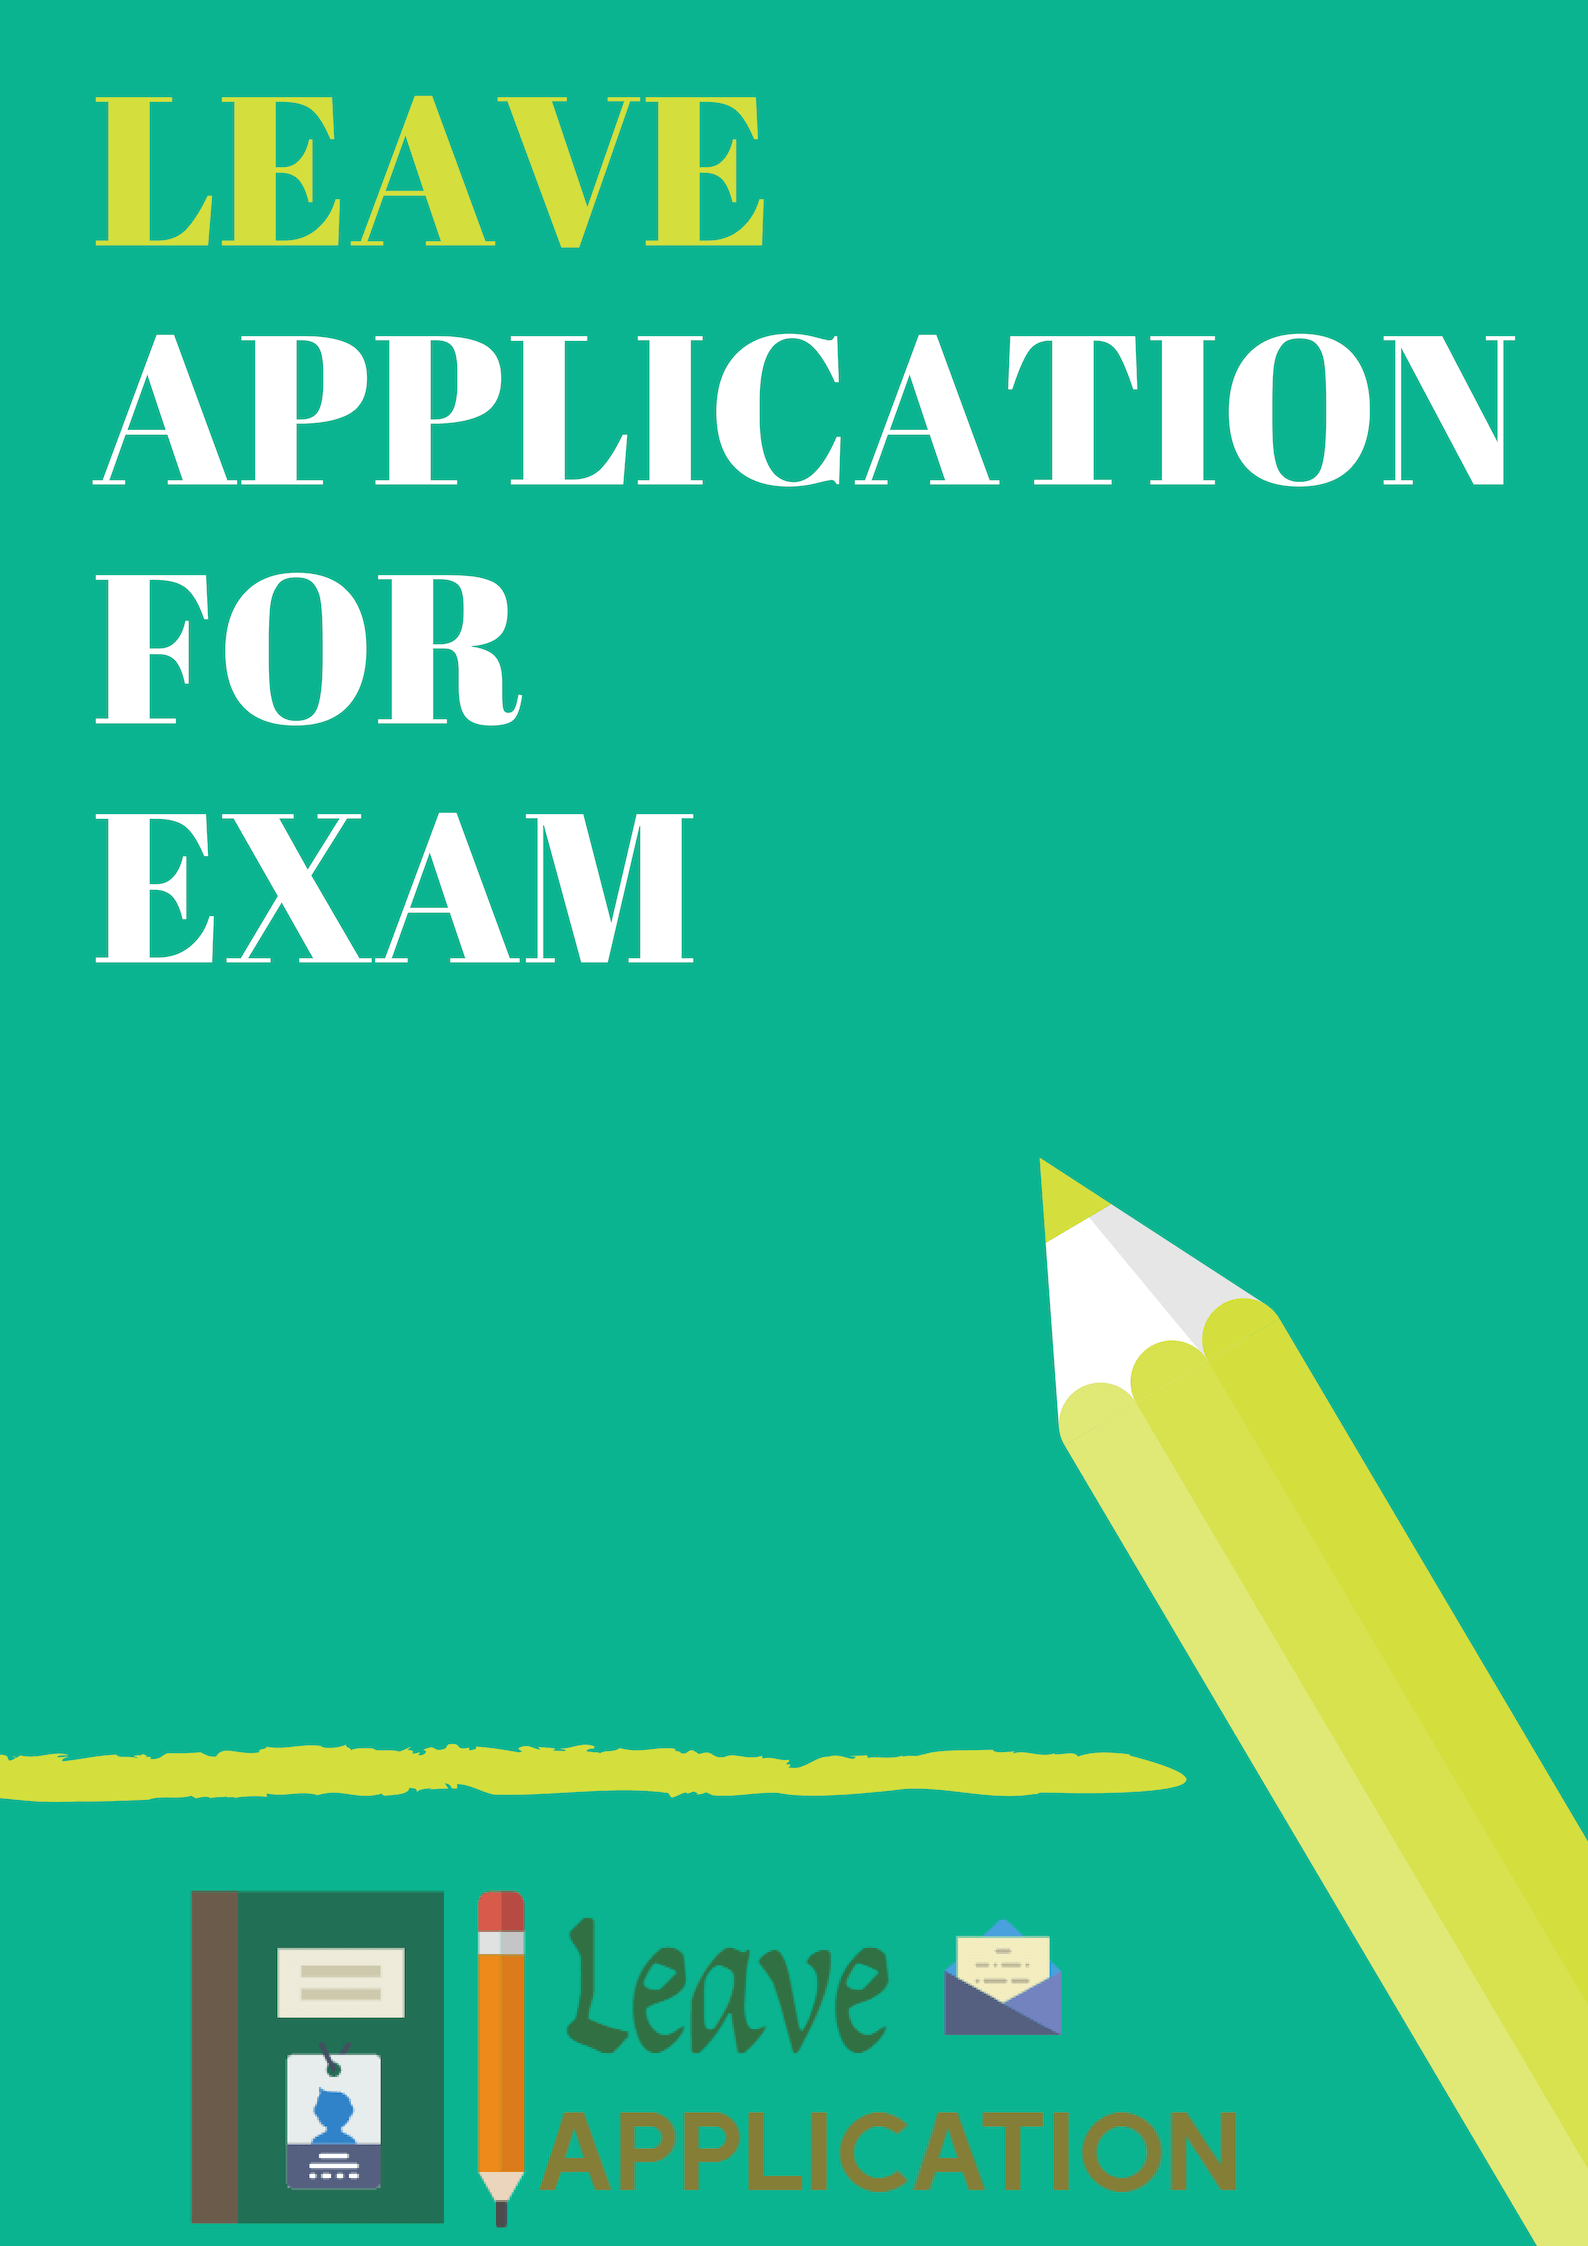 Sample Leave Application For Exam Preparation For Office/ School